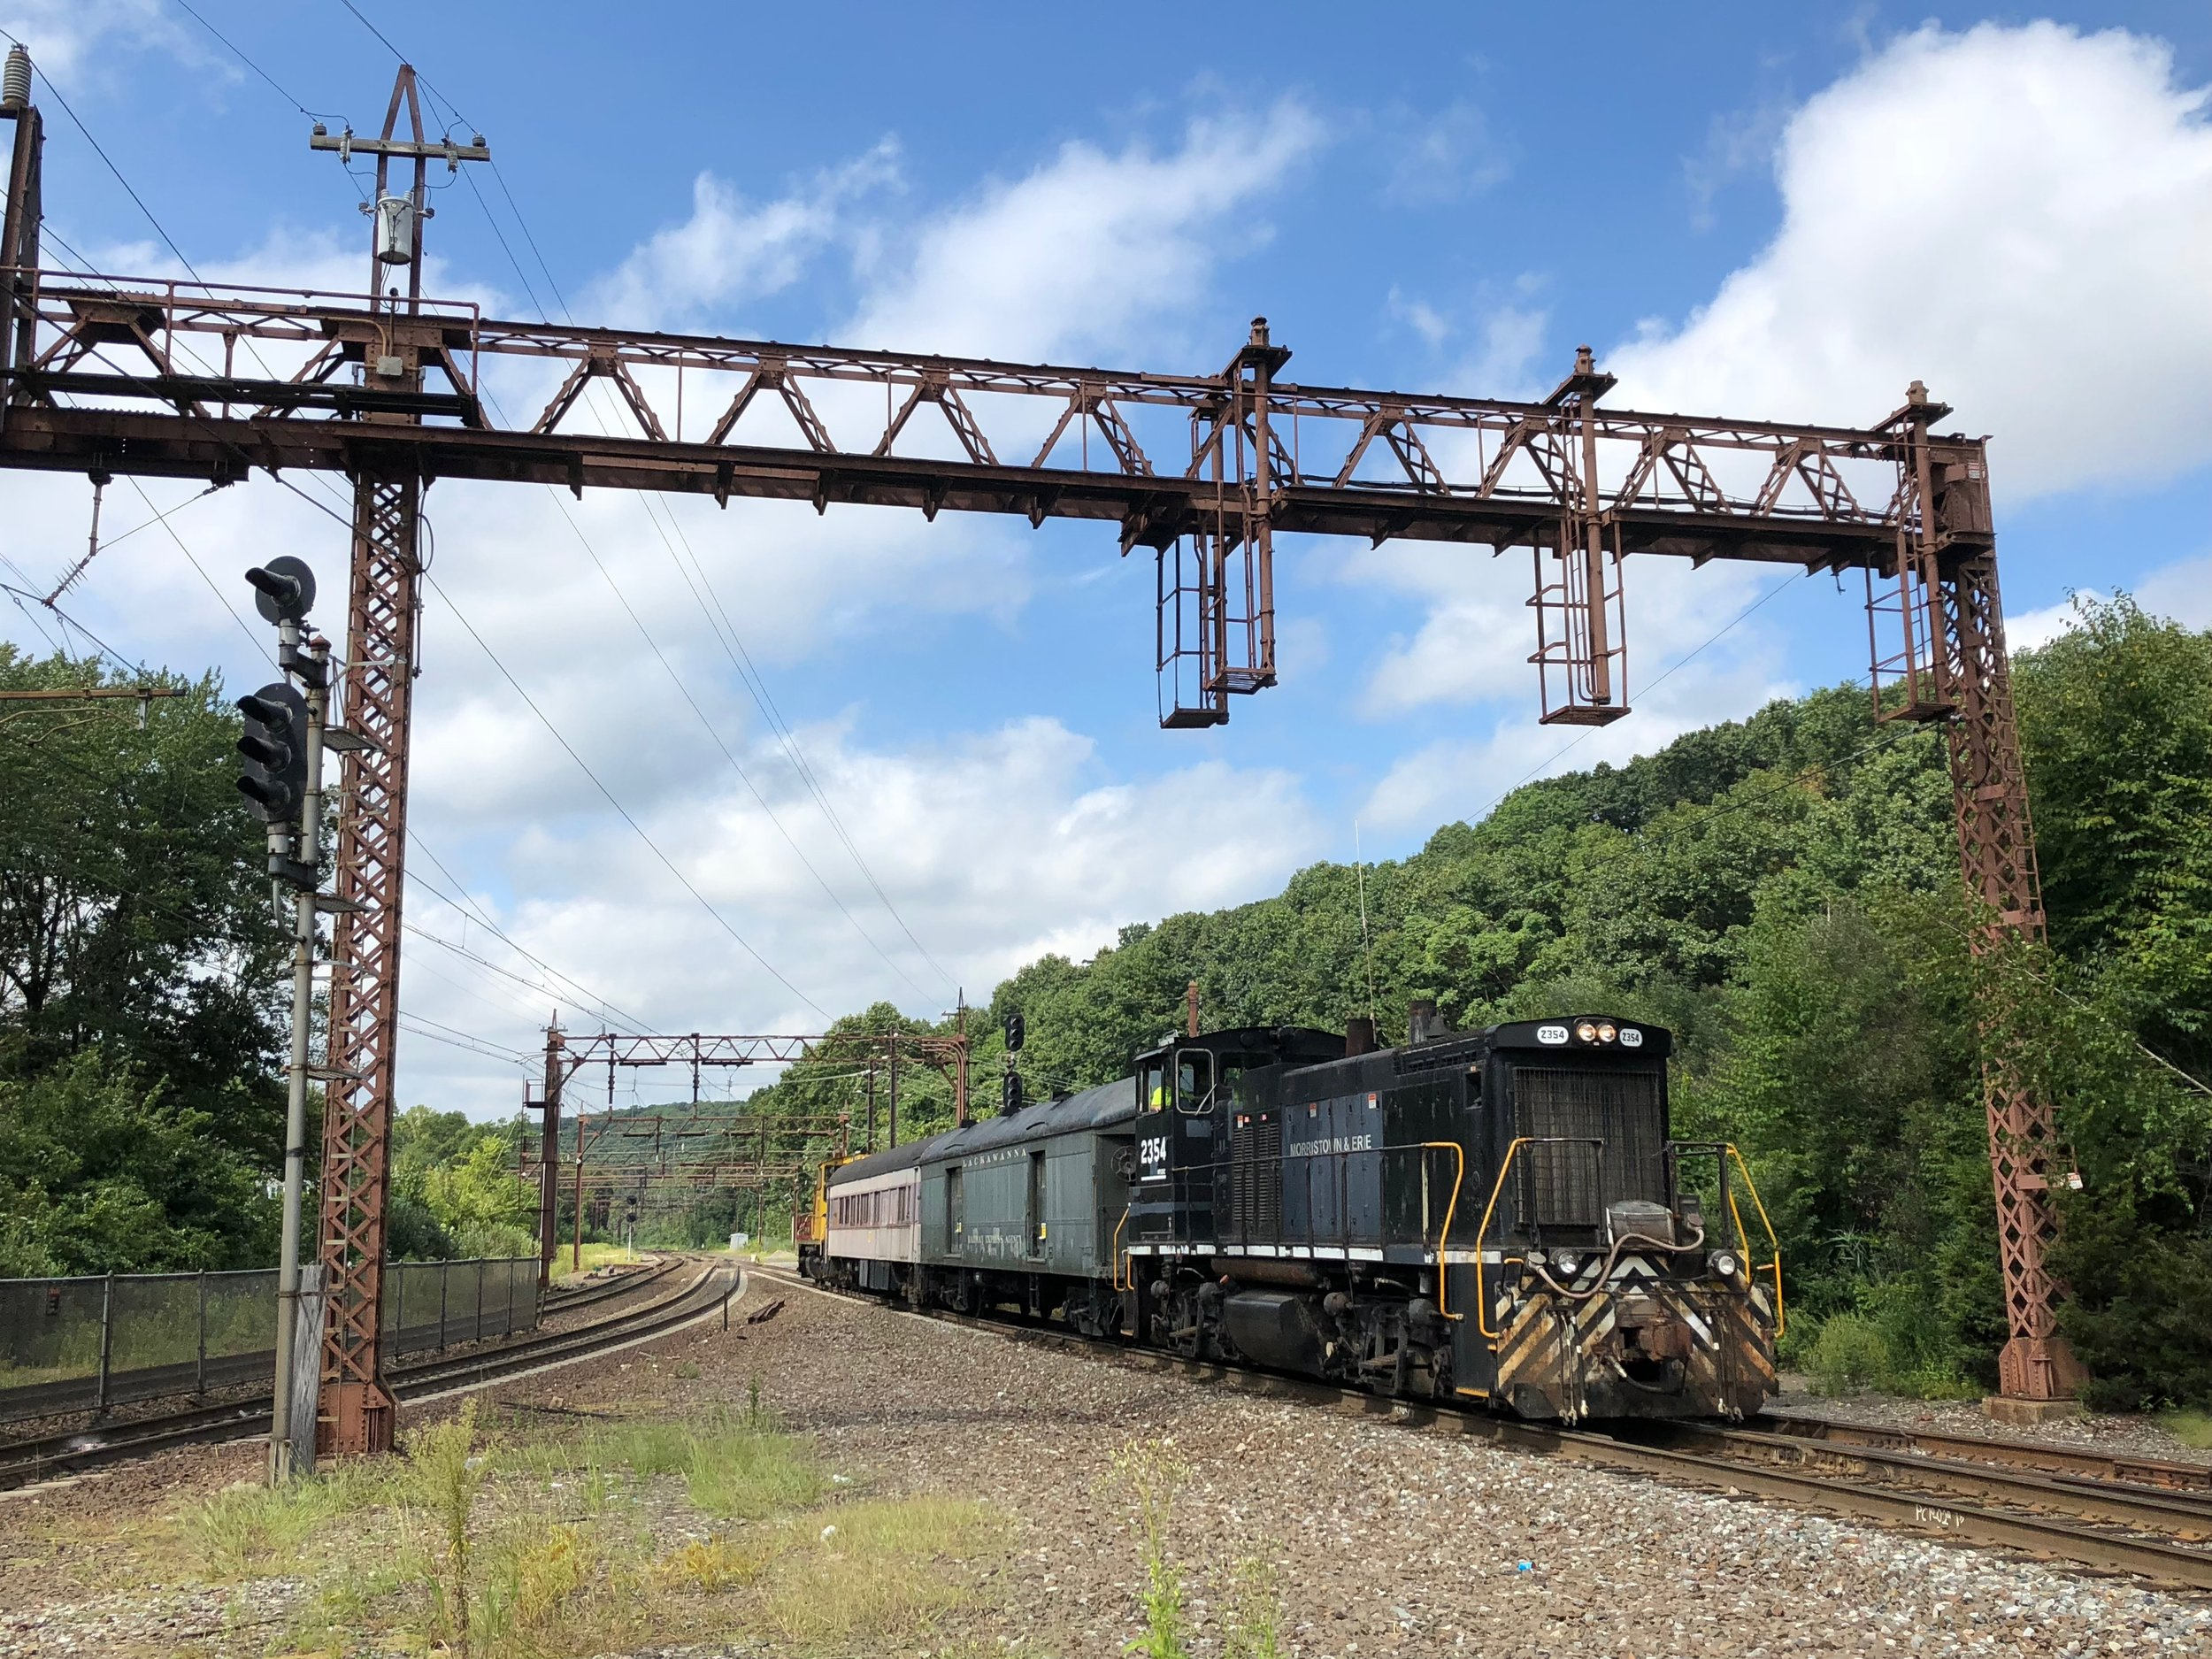 The consist rolls east through Denville, being shoved by M&E 20.